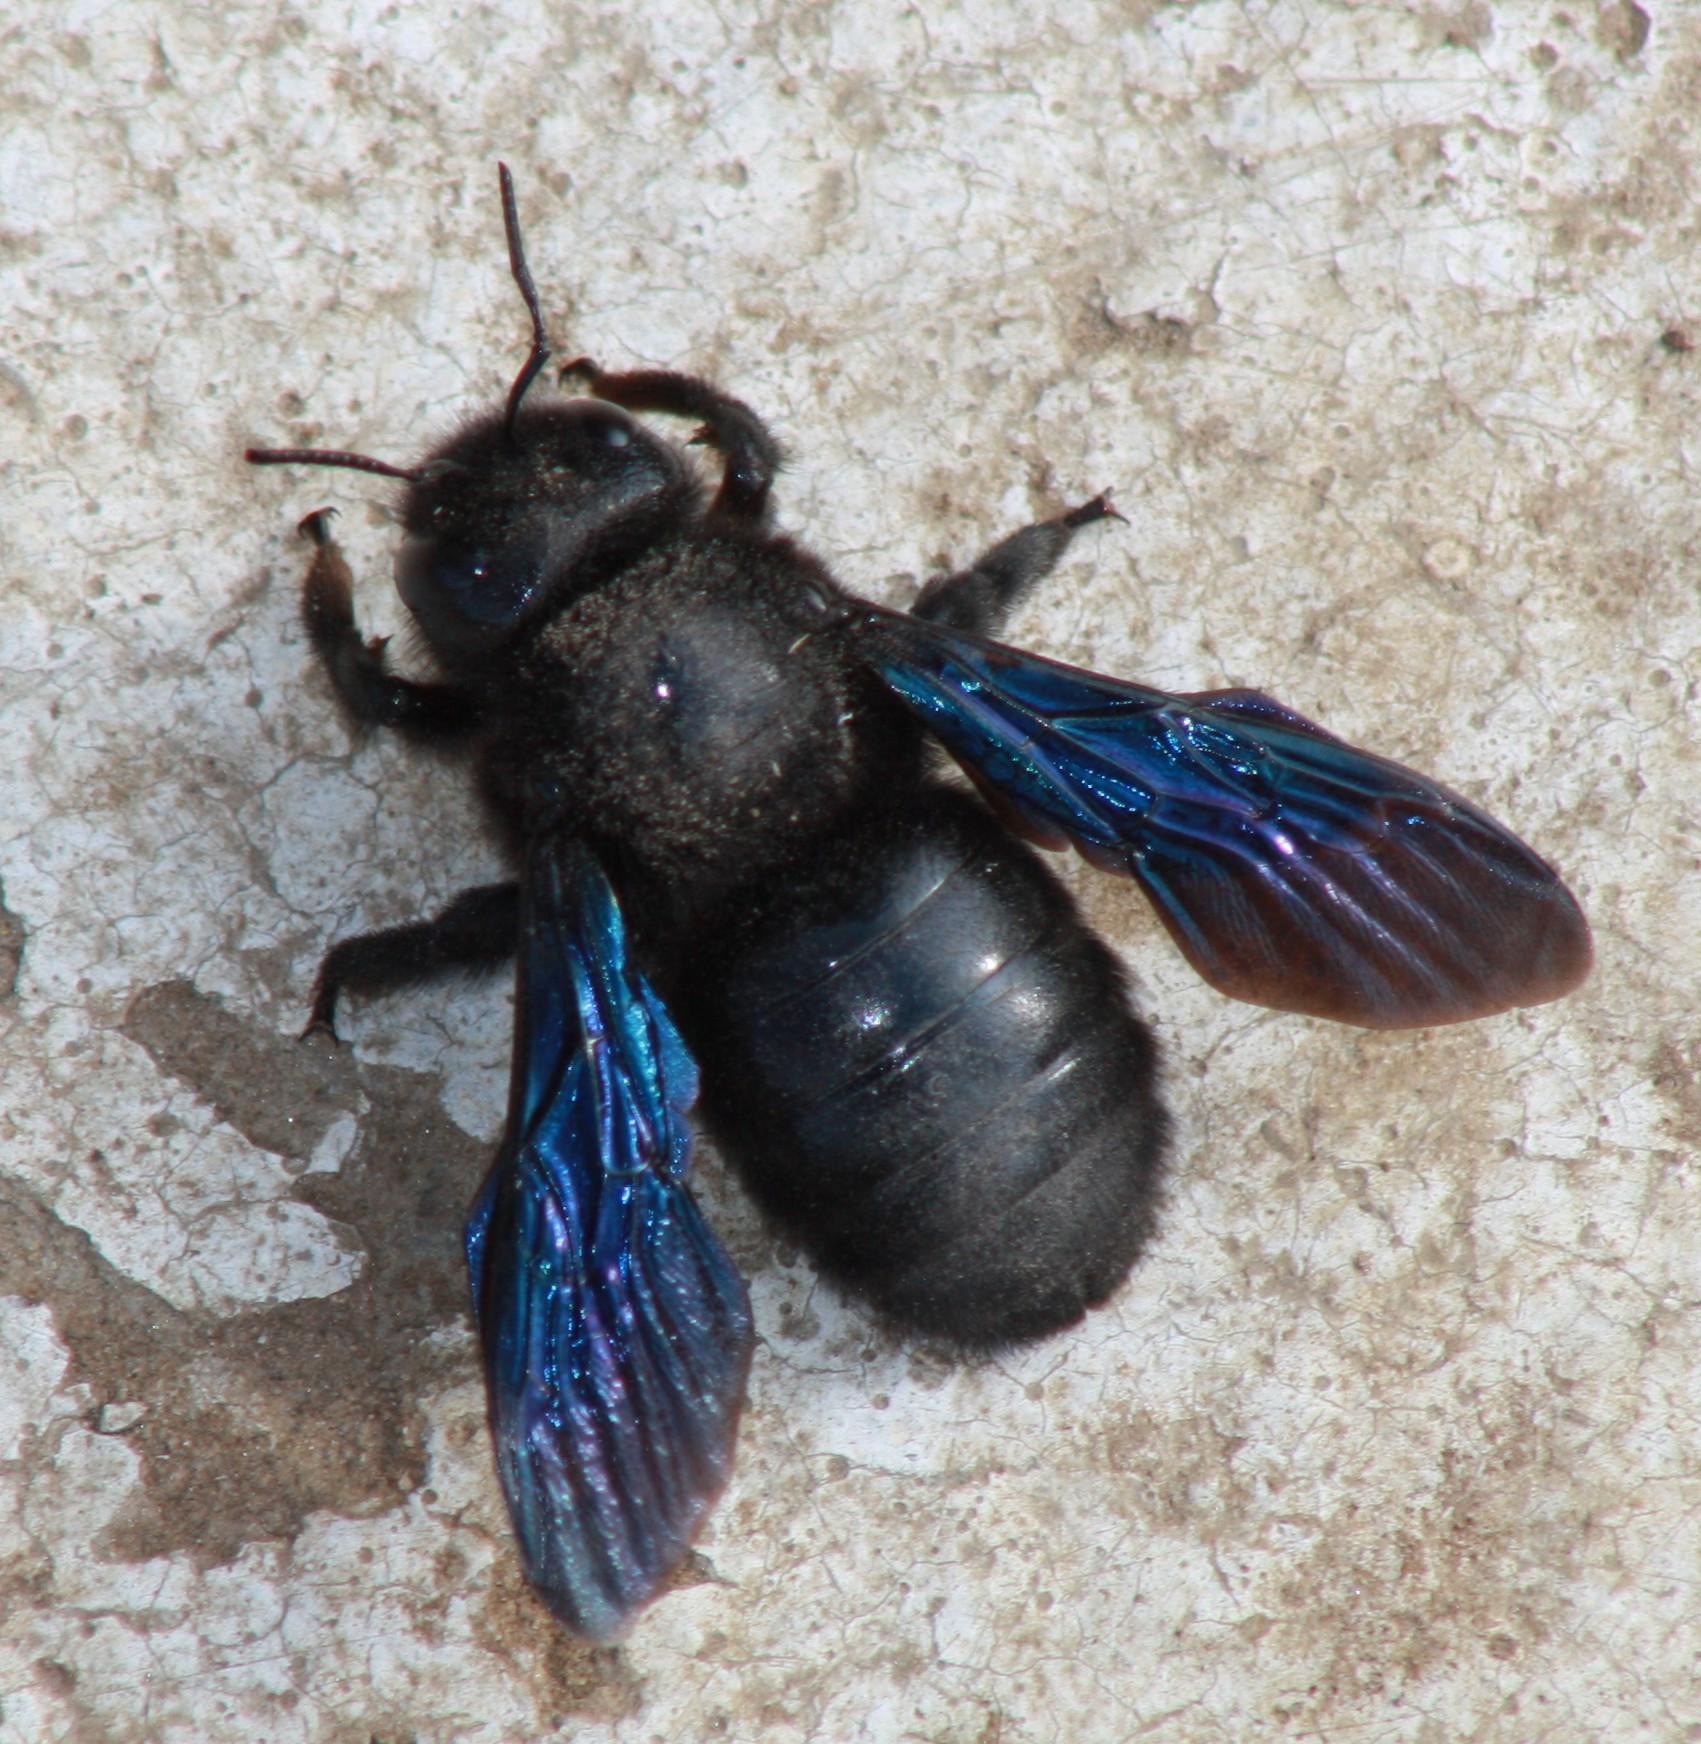 Carpenter bees - photo#19